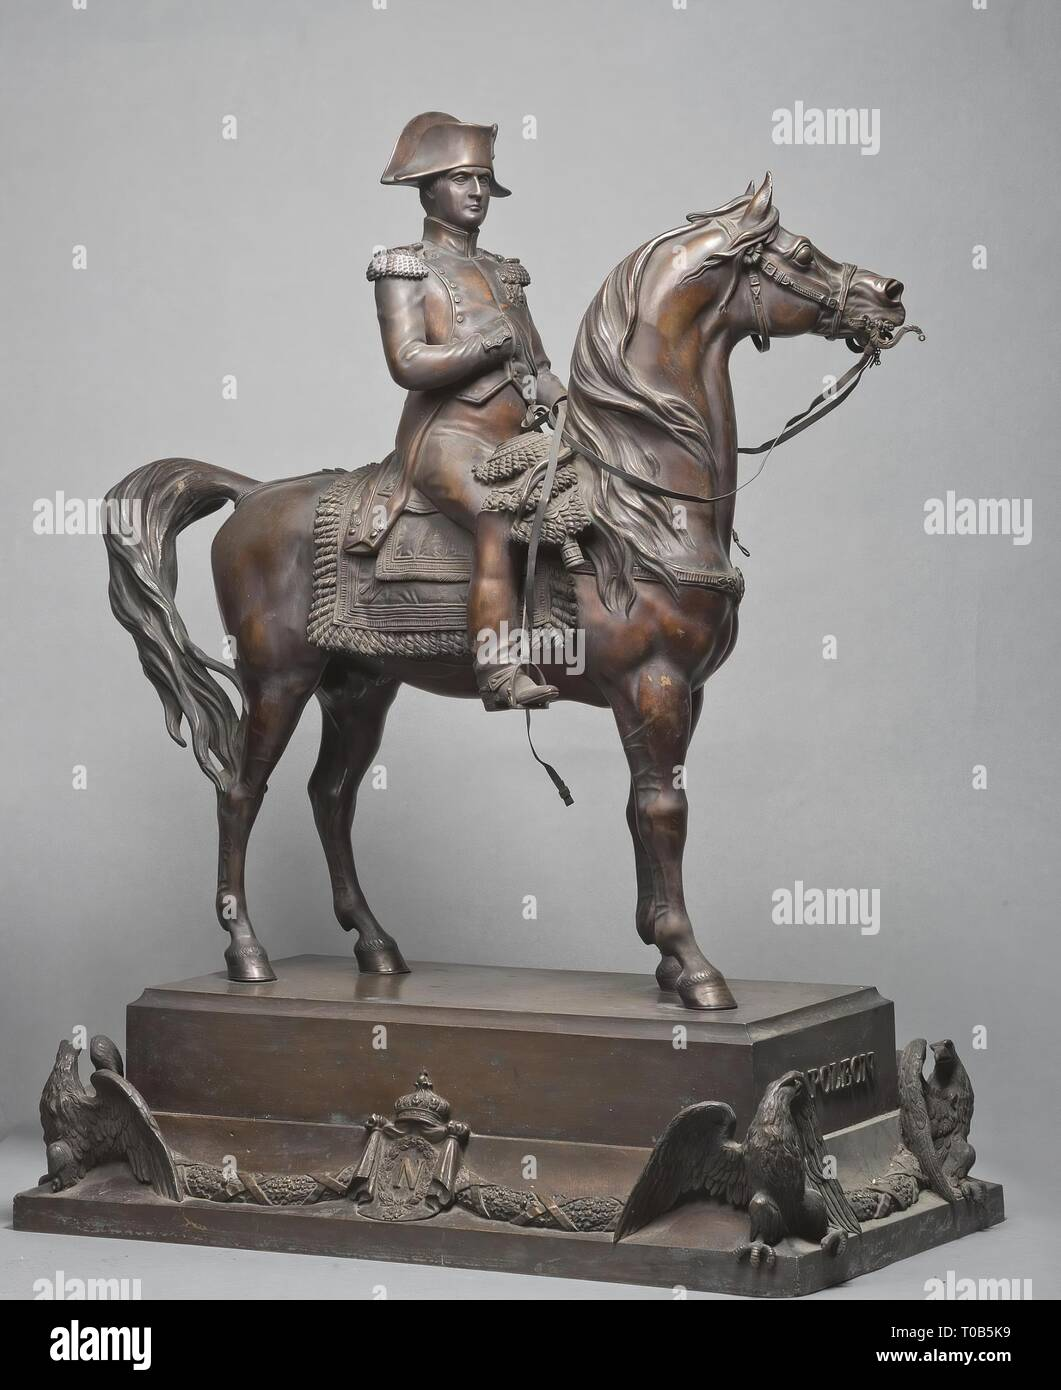 'Equestrian Statue of Napoleon I'. Russia, 1846. Dimensions: 82x62 cm. Museum: State Hermitage, St. Petersburg. Author: Alfred D'Orsay. - Stock Image